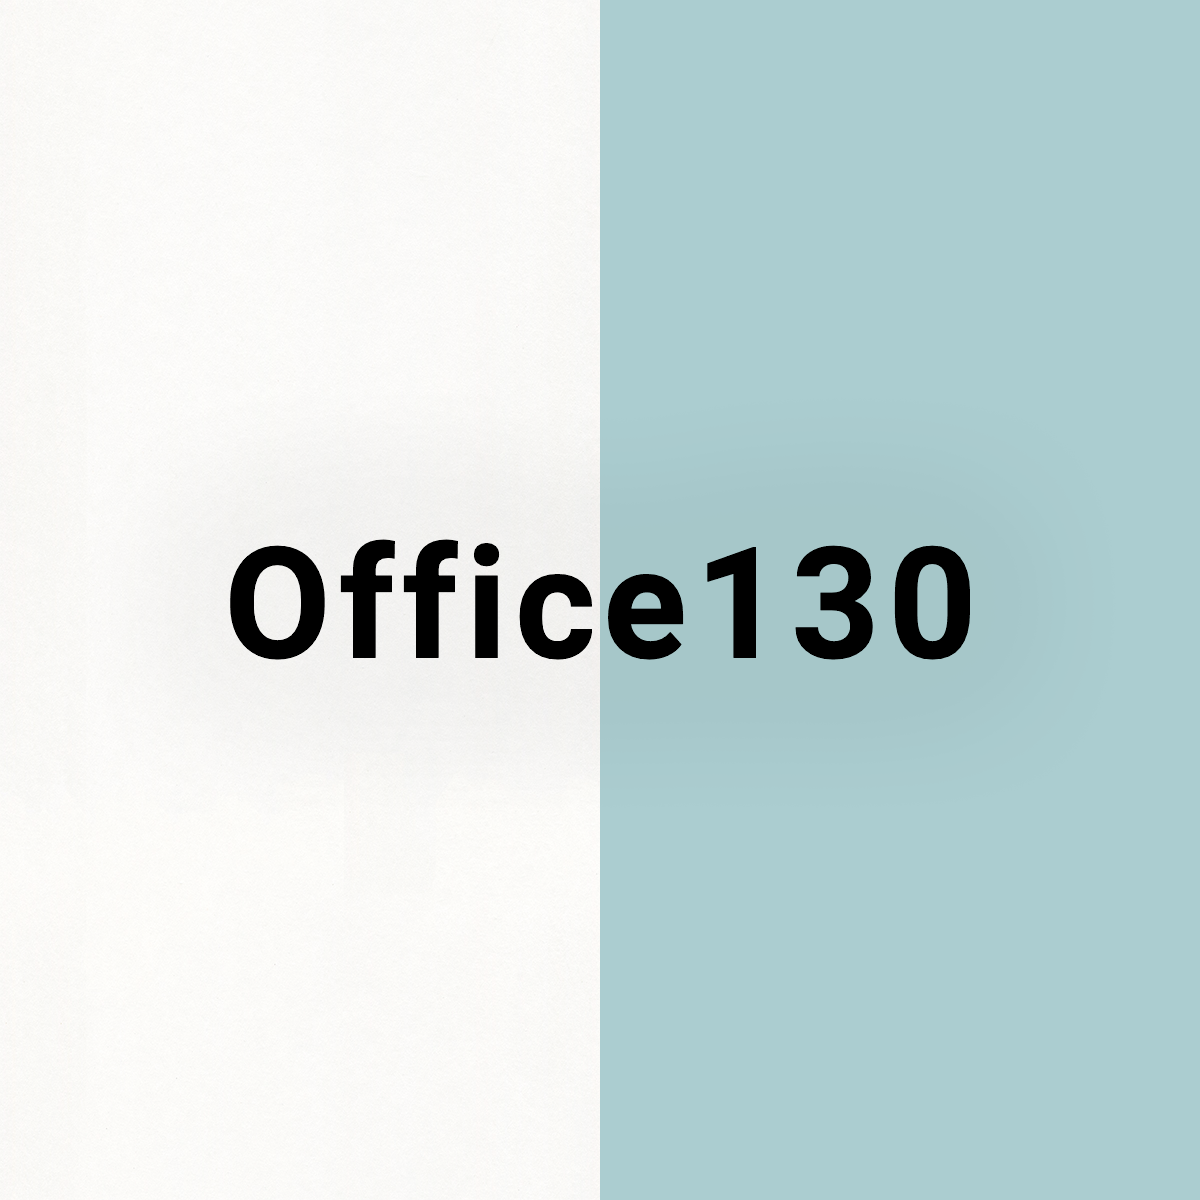 2004 Office130新規サイト